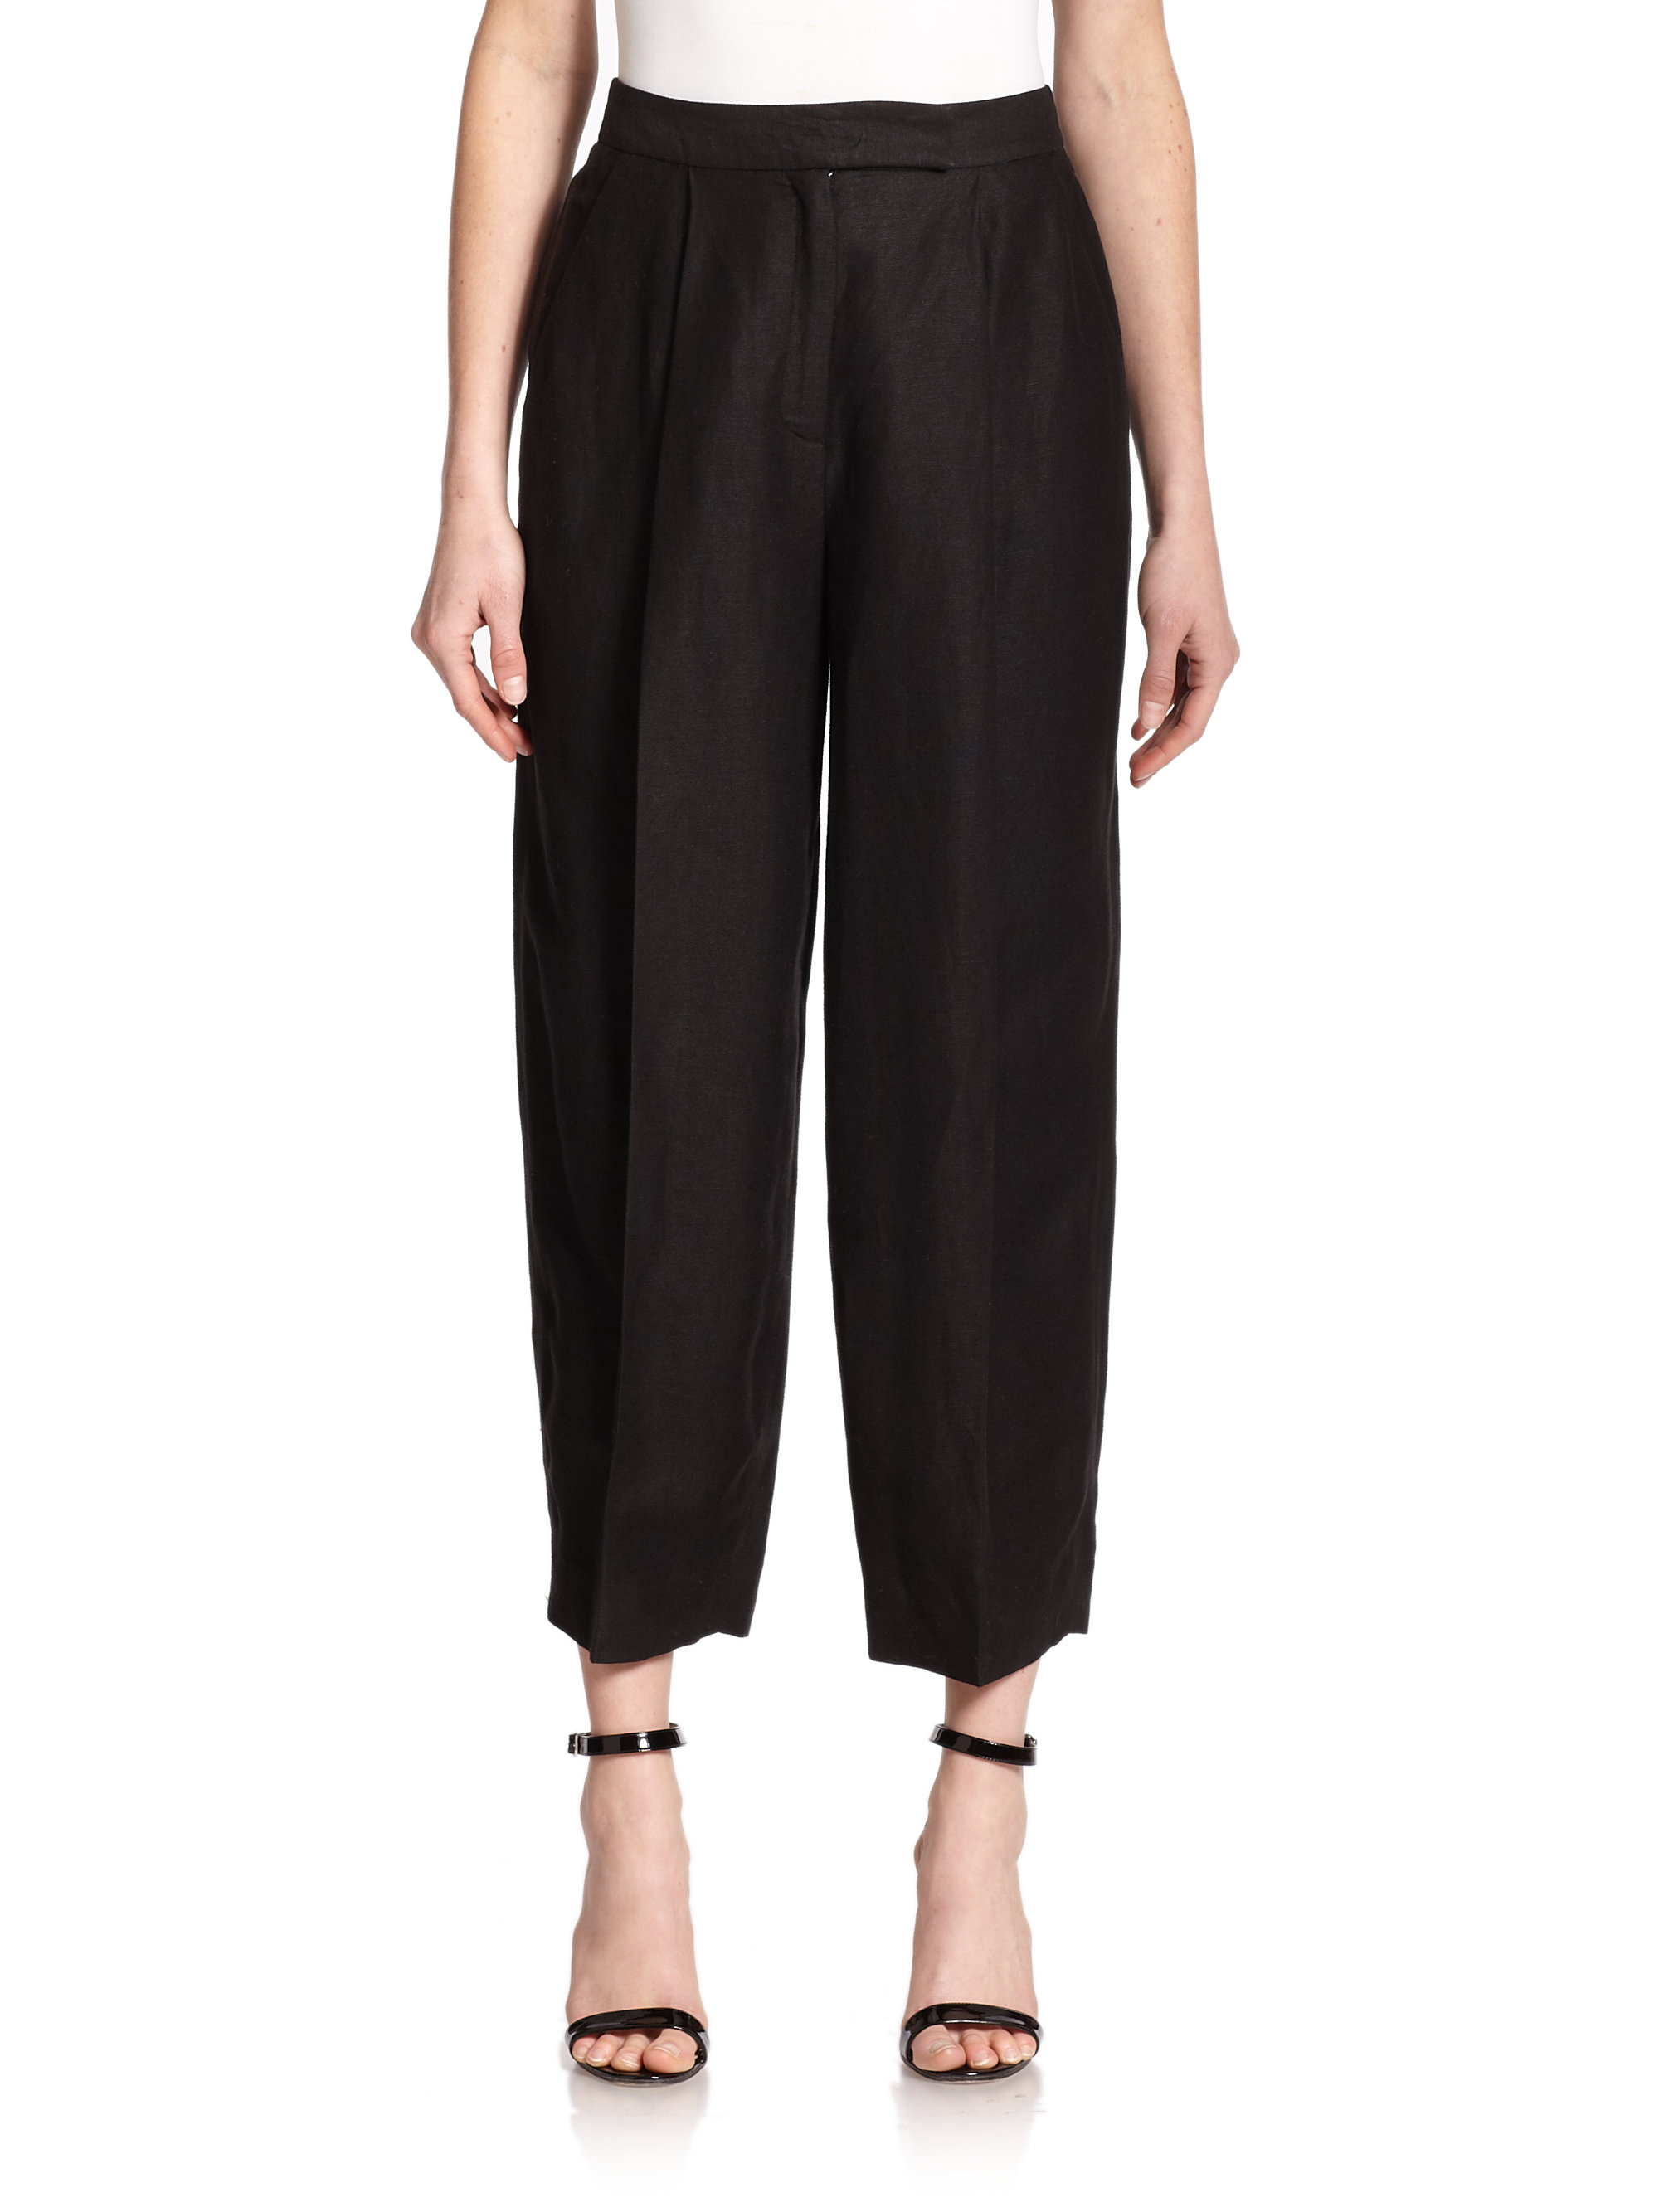 TROUSERS - Casual trousers Milly Finishline Sale Fashion Style For Sale Cheap Online Outlet Wide Range Of dP4zUBy